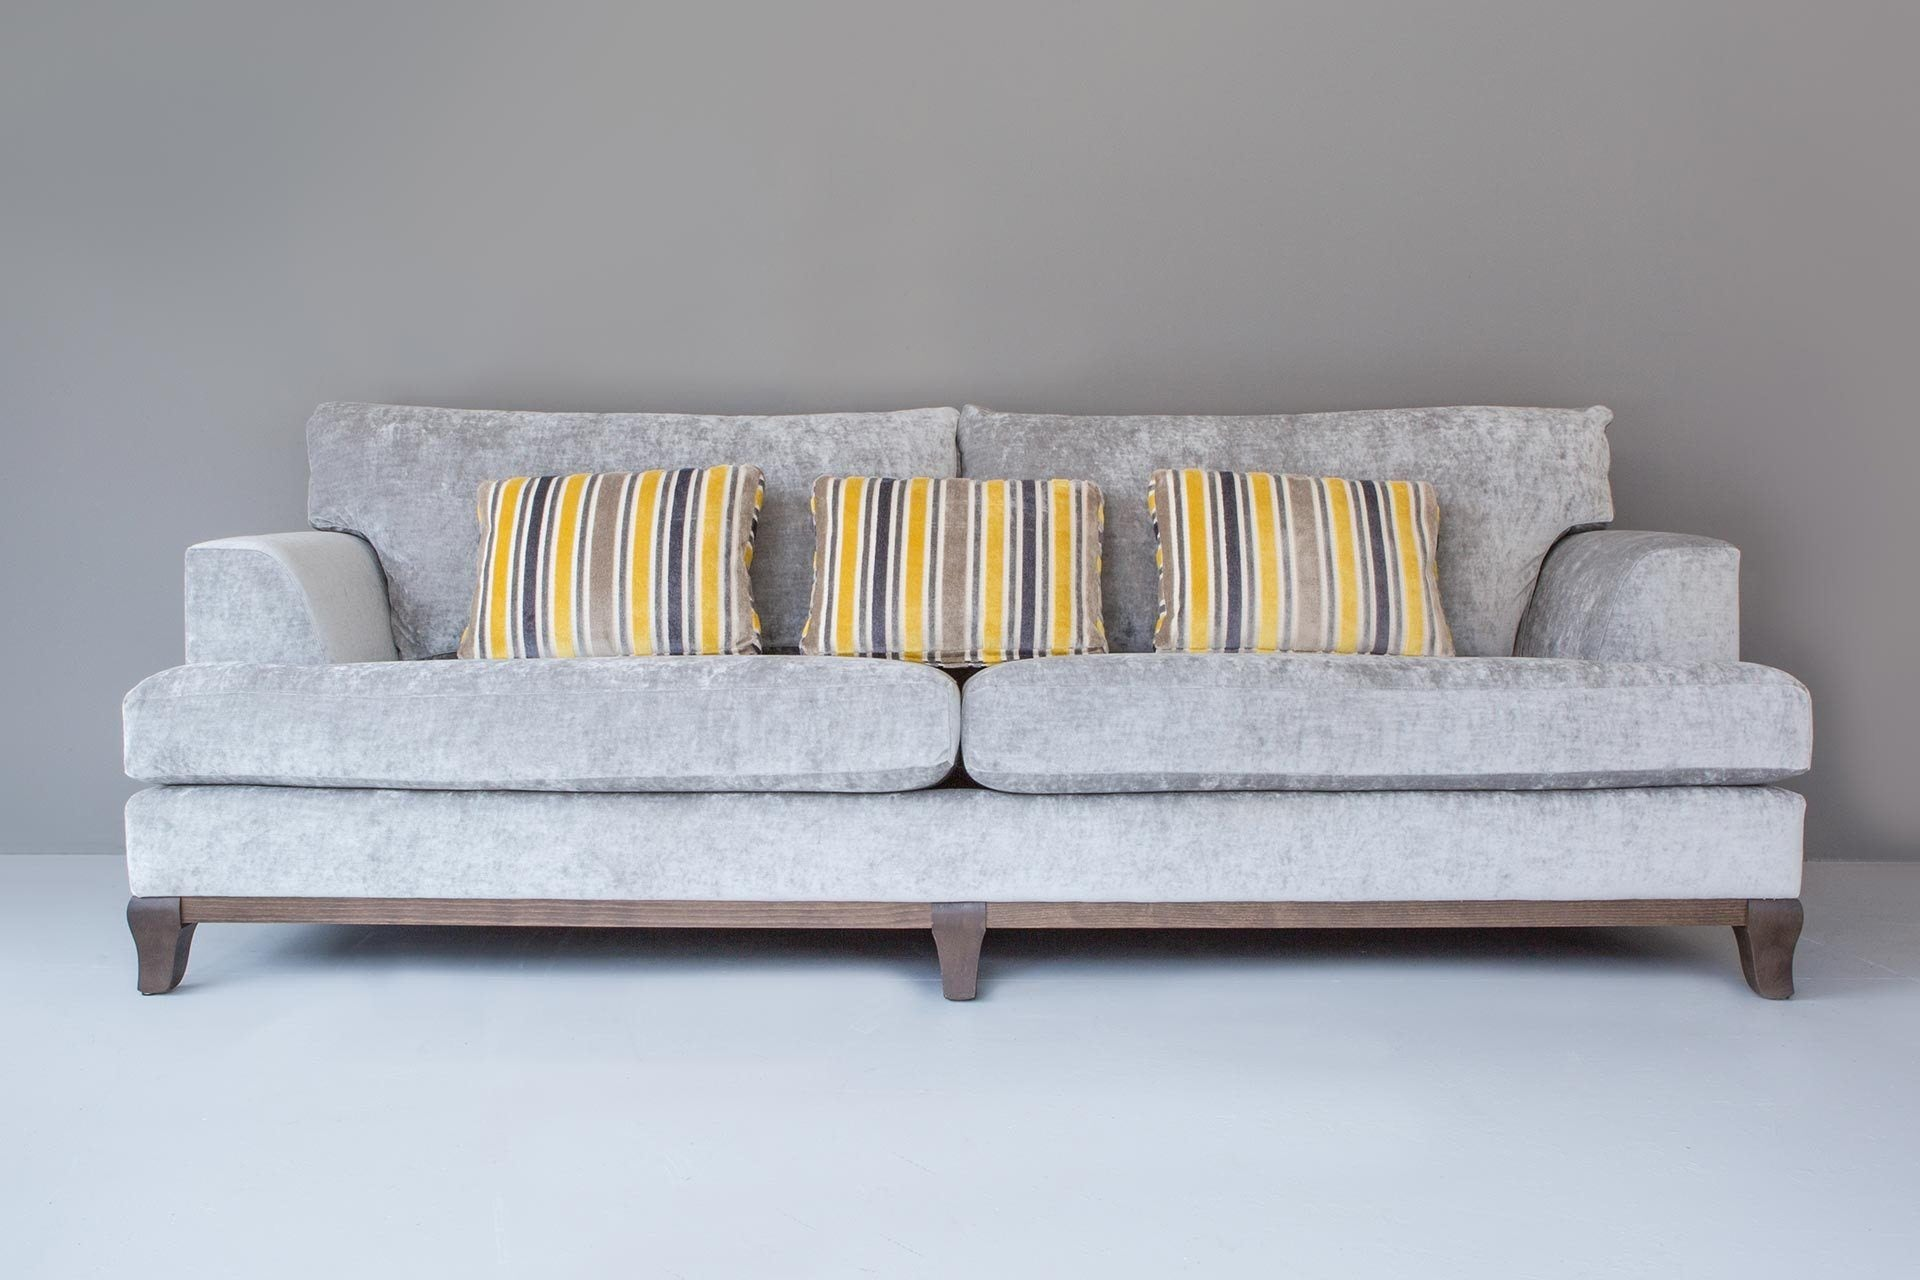 239cm Classic Back Sofa With Lorenzo Velvet Fabric In Platinum Colour With Darcy Stripe Graphite Cushions